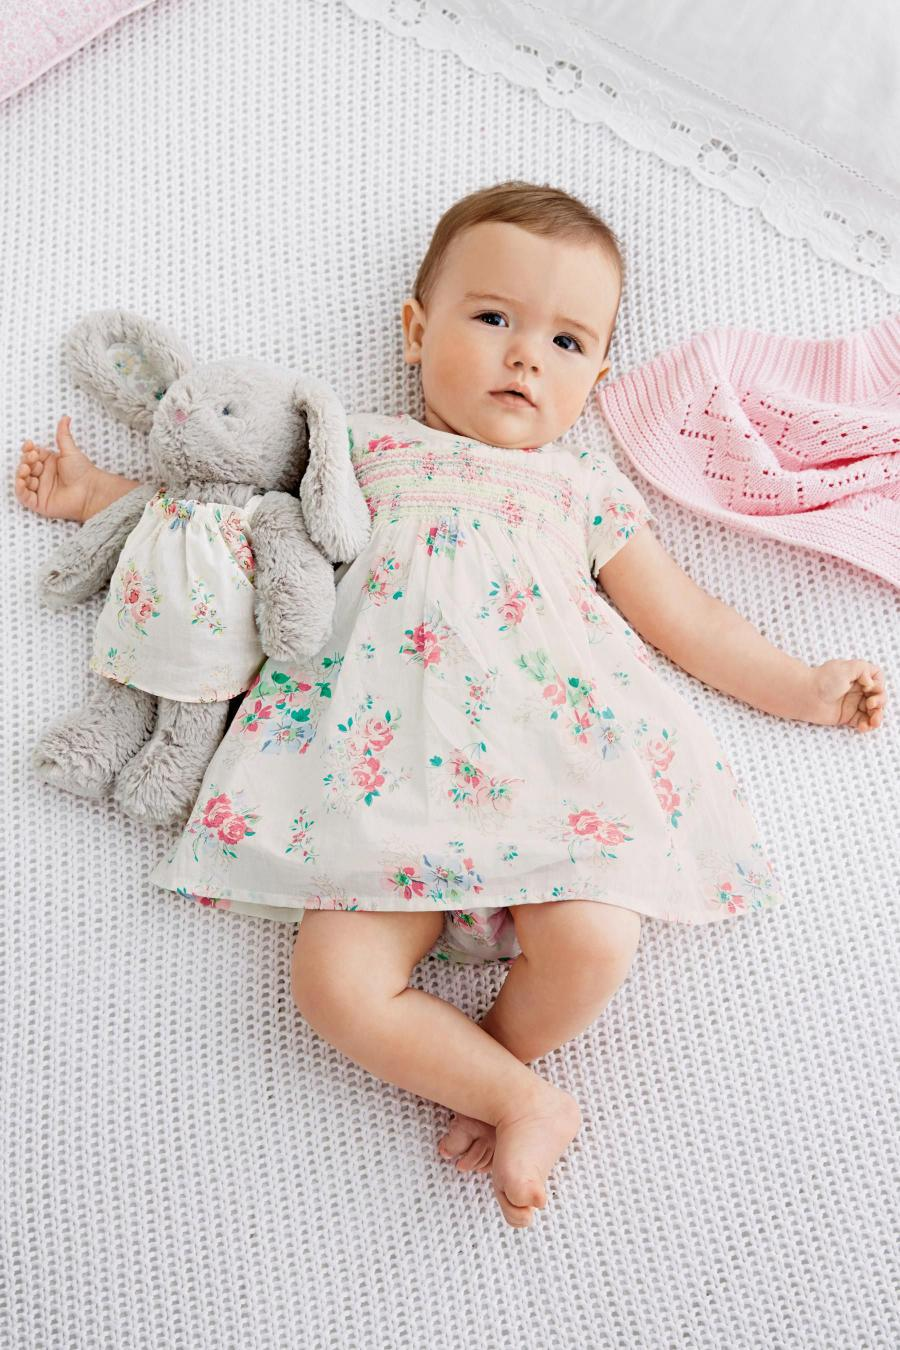 Create Cute and Comfortable Outfits with Baby Girls' Overalls. Whether your little one is always on the go or content to spend most of her time in your arms, maximize her comfort and simplify outfits with baby girls' overalls.